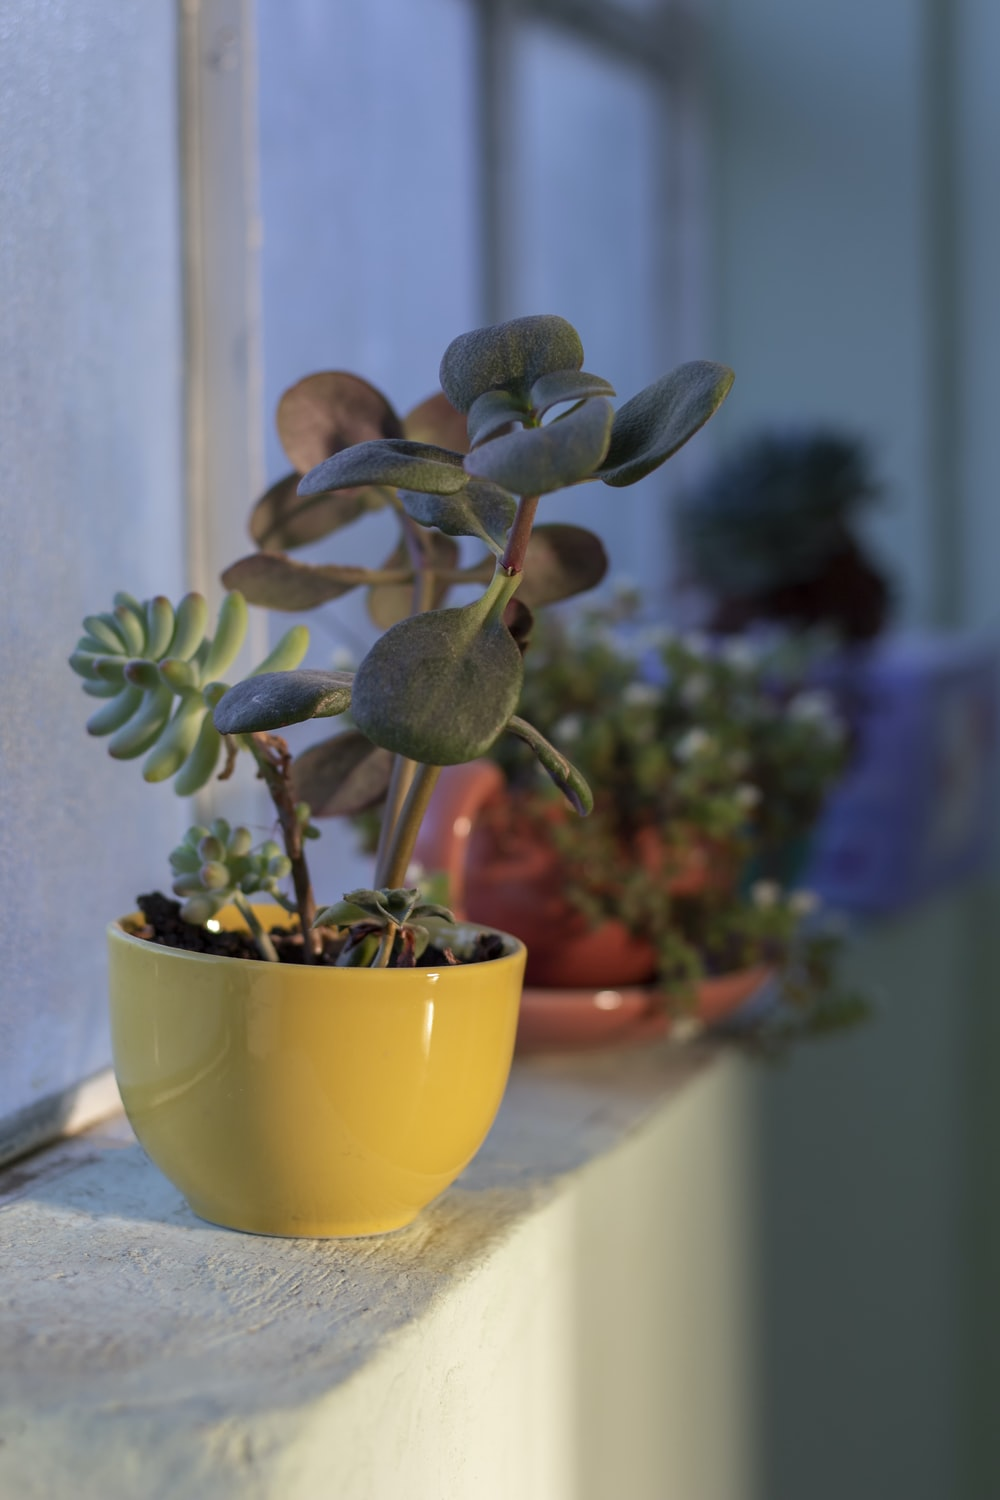 green and brown plant in yellow ceramic pot